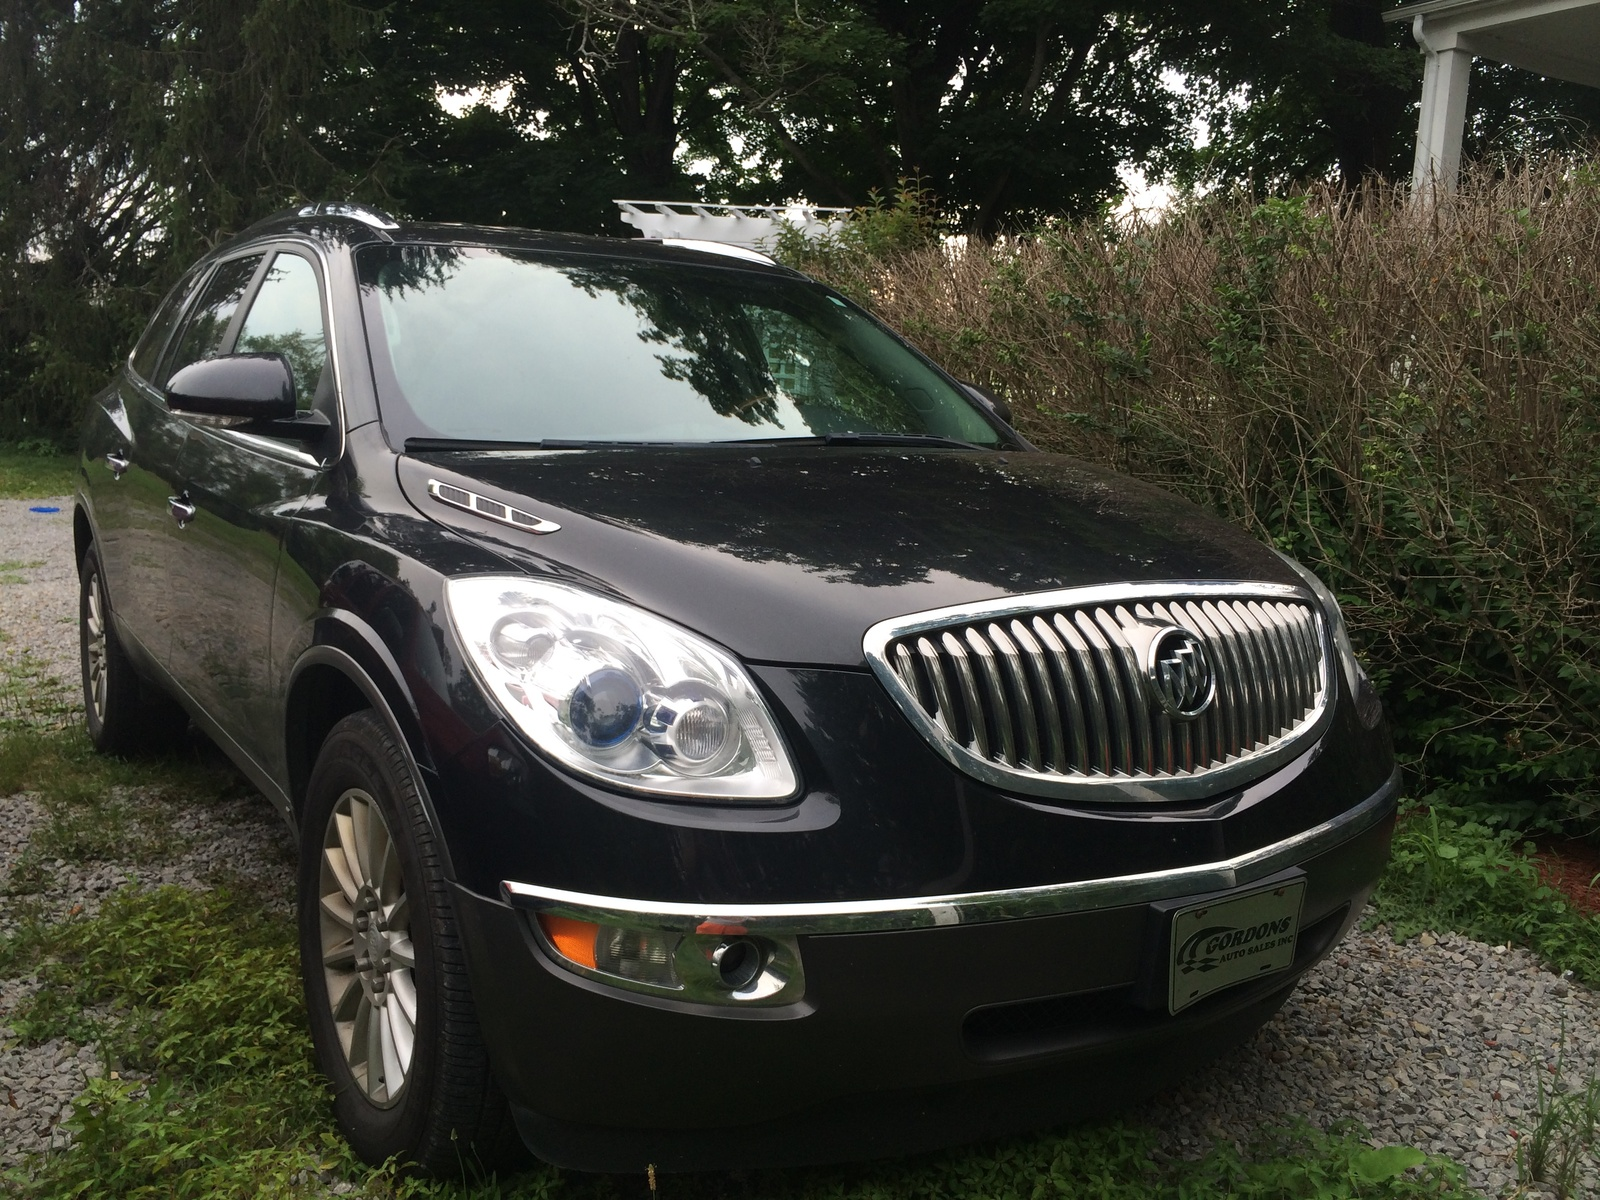 used buick enclave for sale blairsville pa cargurus. Black Bedroom Furniture Sets. Home Design Ideas